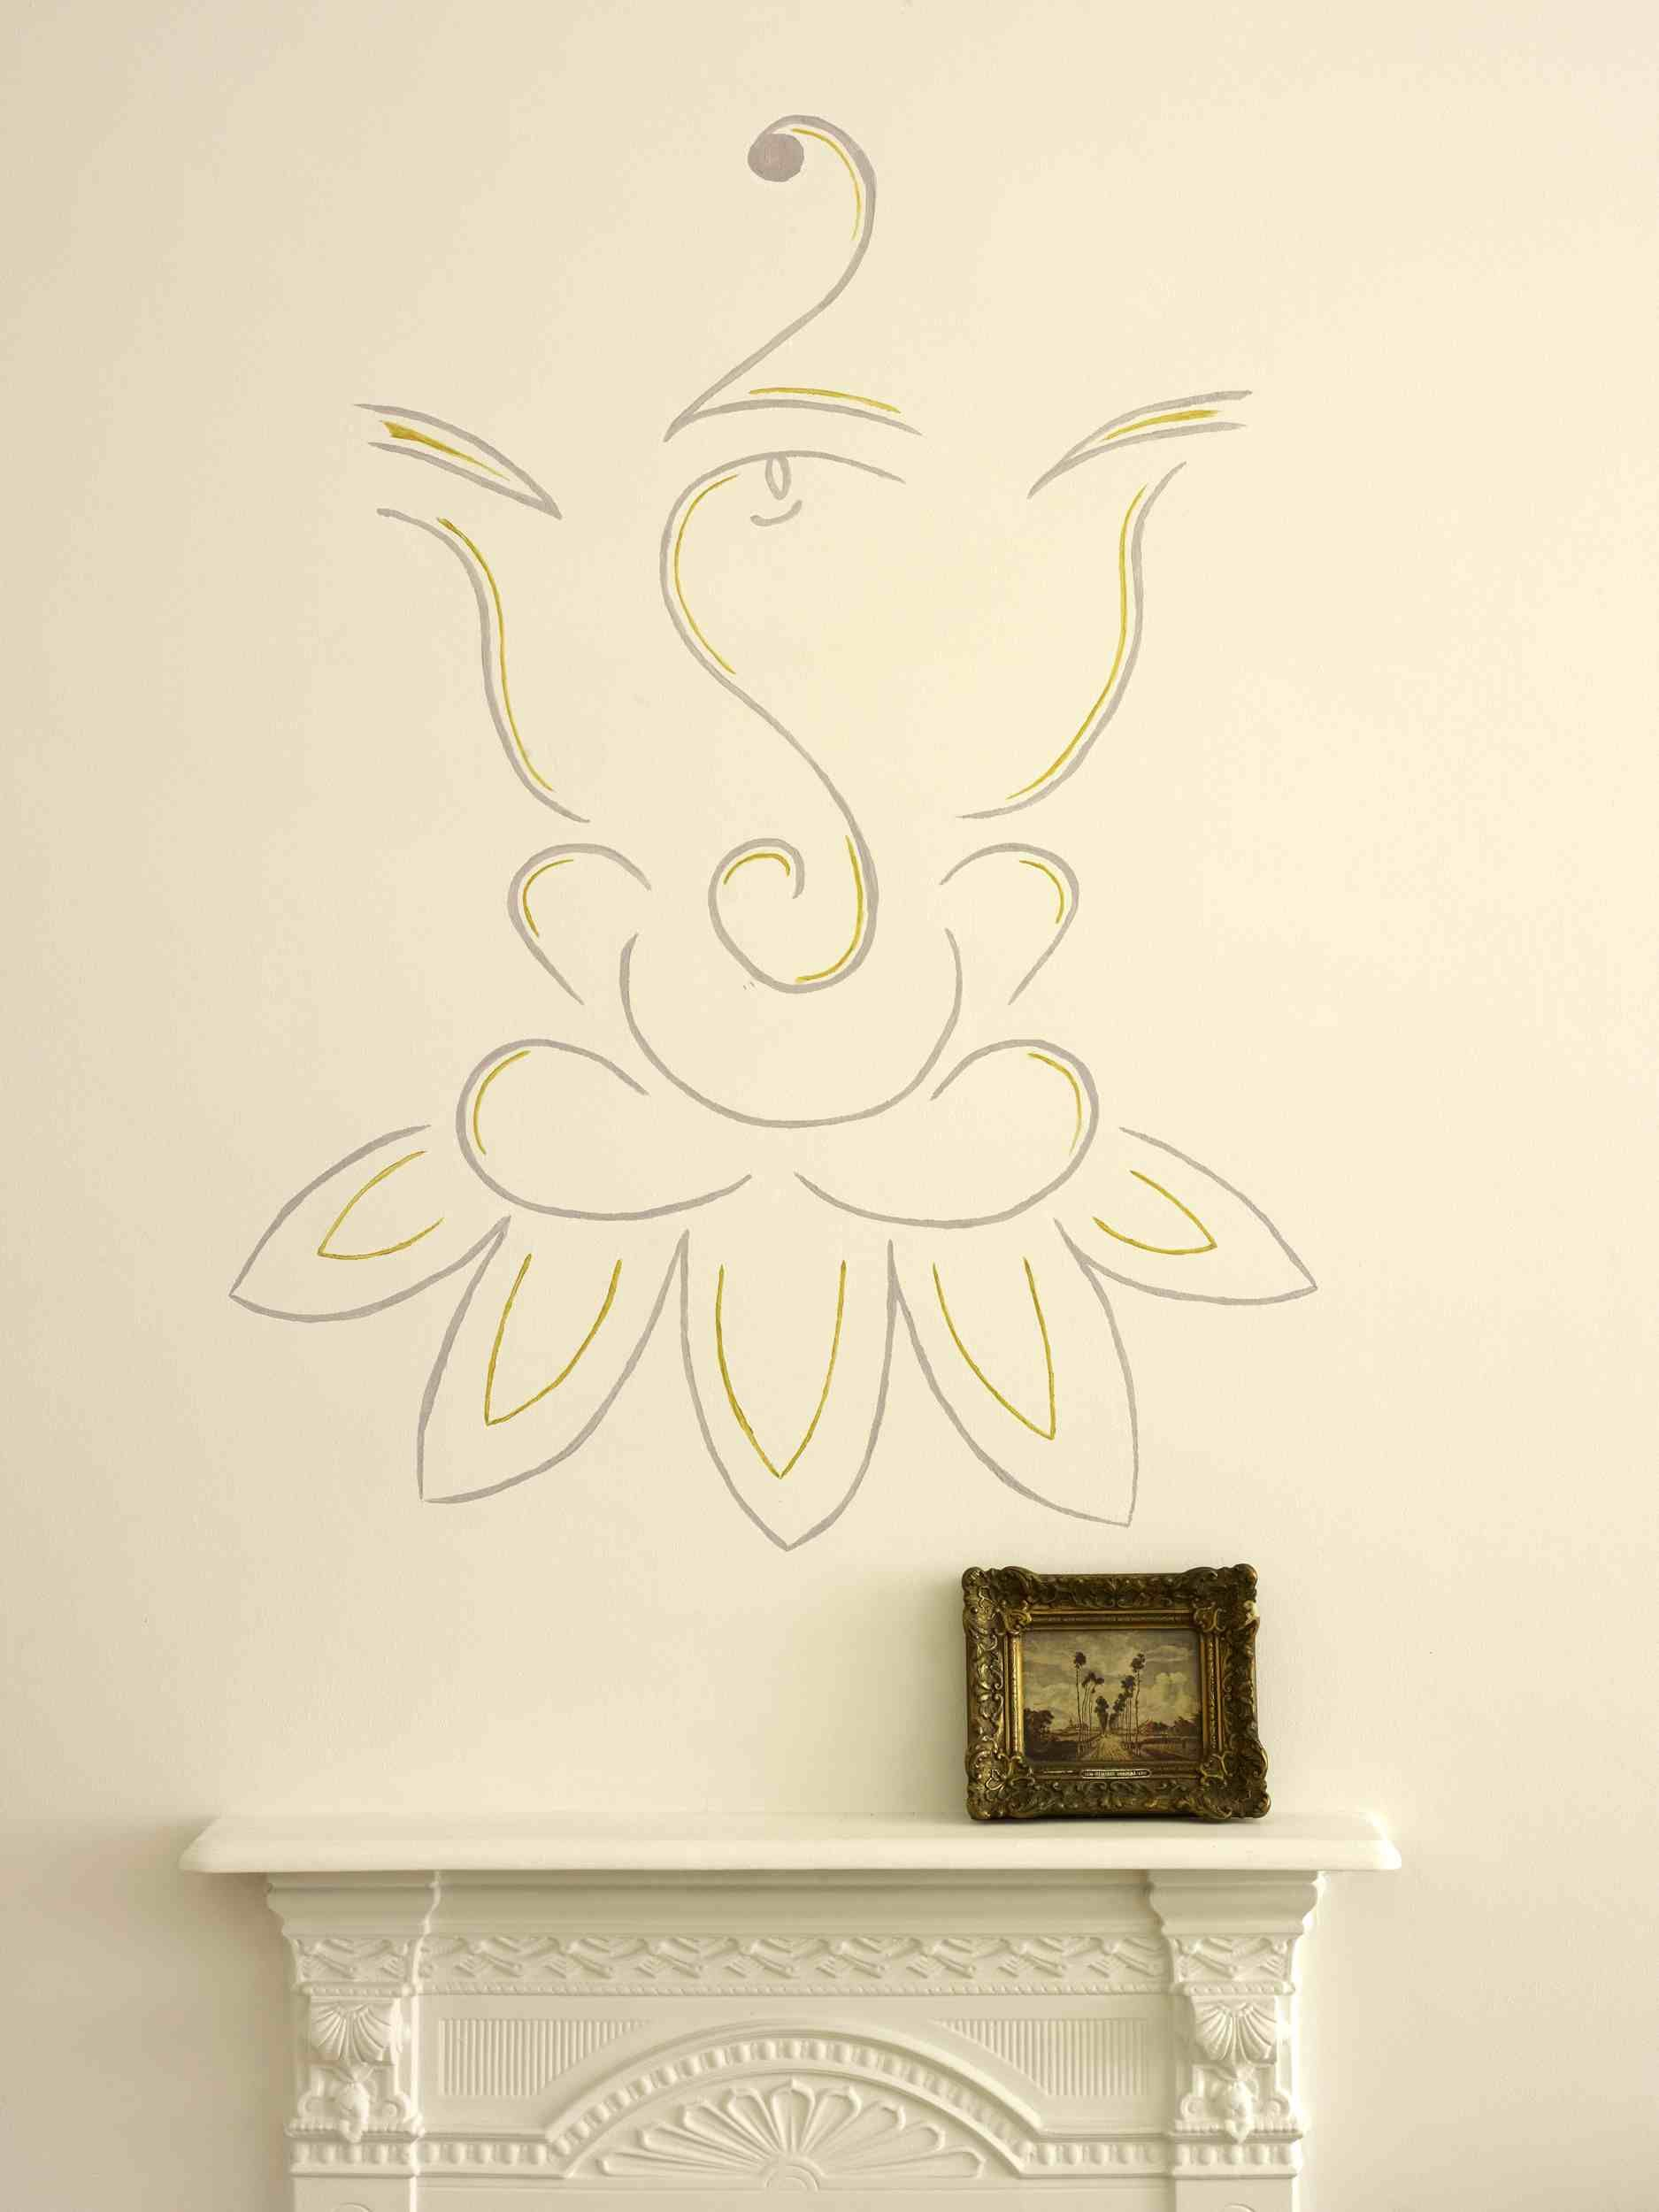 Simple line drawing of haand painted ganesh in anita kaushals house www anitakaushal com